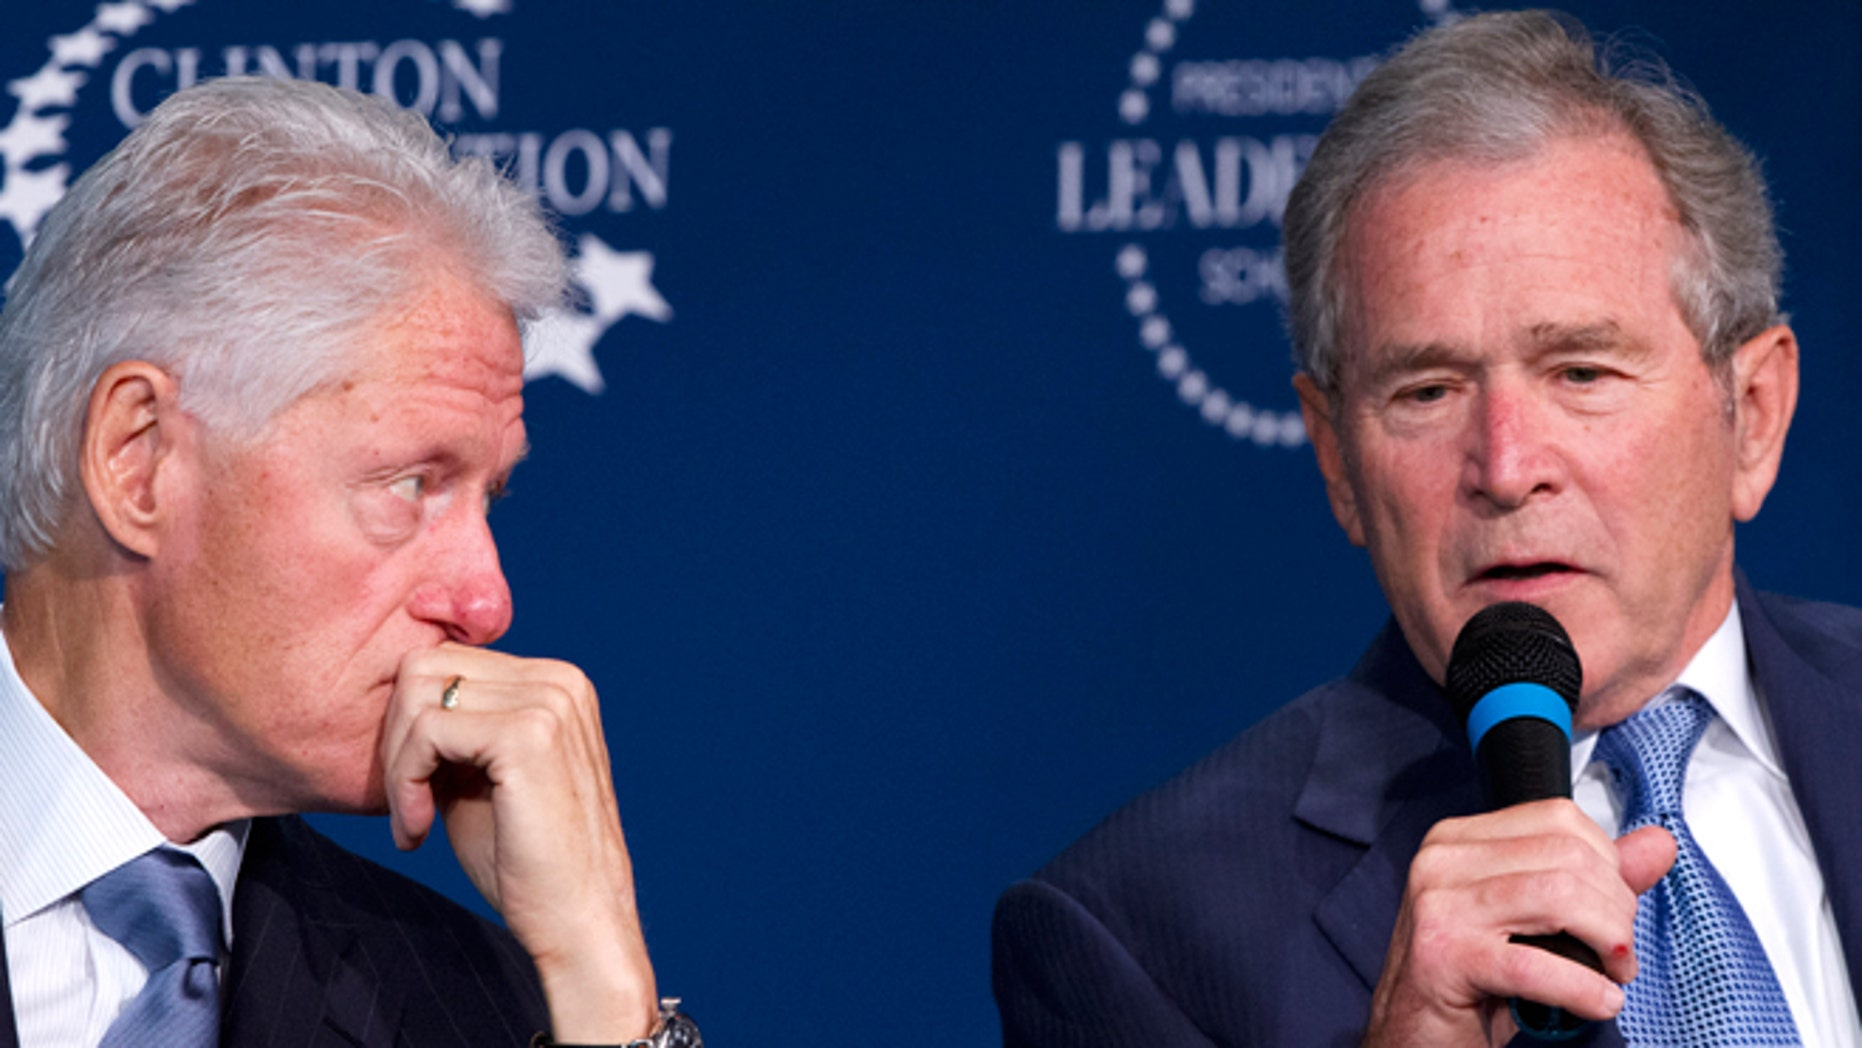 Sept. 8, 2014: Former President Bill Clinton listens at left, as fellow former President George W. Bush speaks at the Presidential Leadership Scholars Program Launch, at The Newseum in Washington. The two launched a new scholars program at four presidential libraries, aiming to help academics and business leaders learn more about presidential leadership.